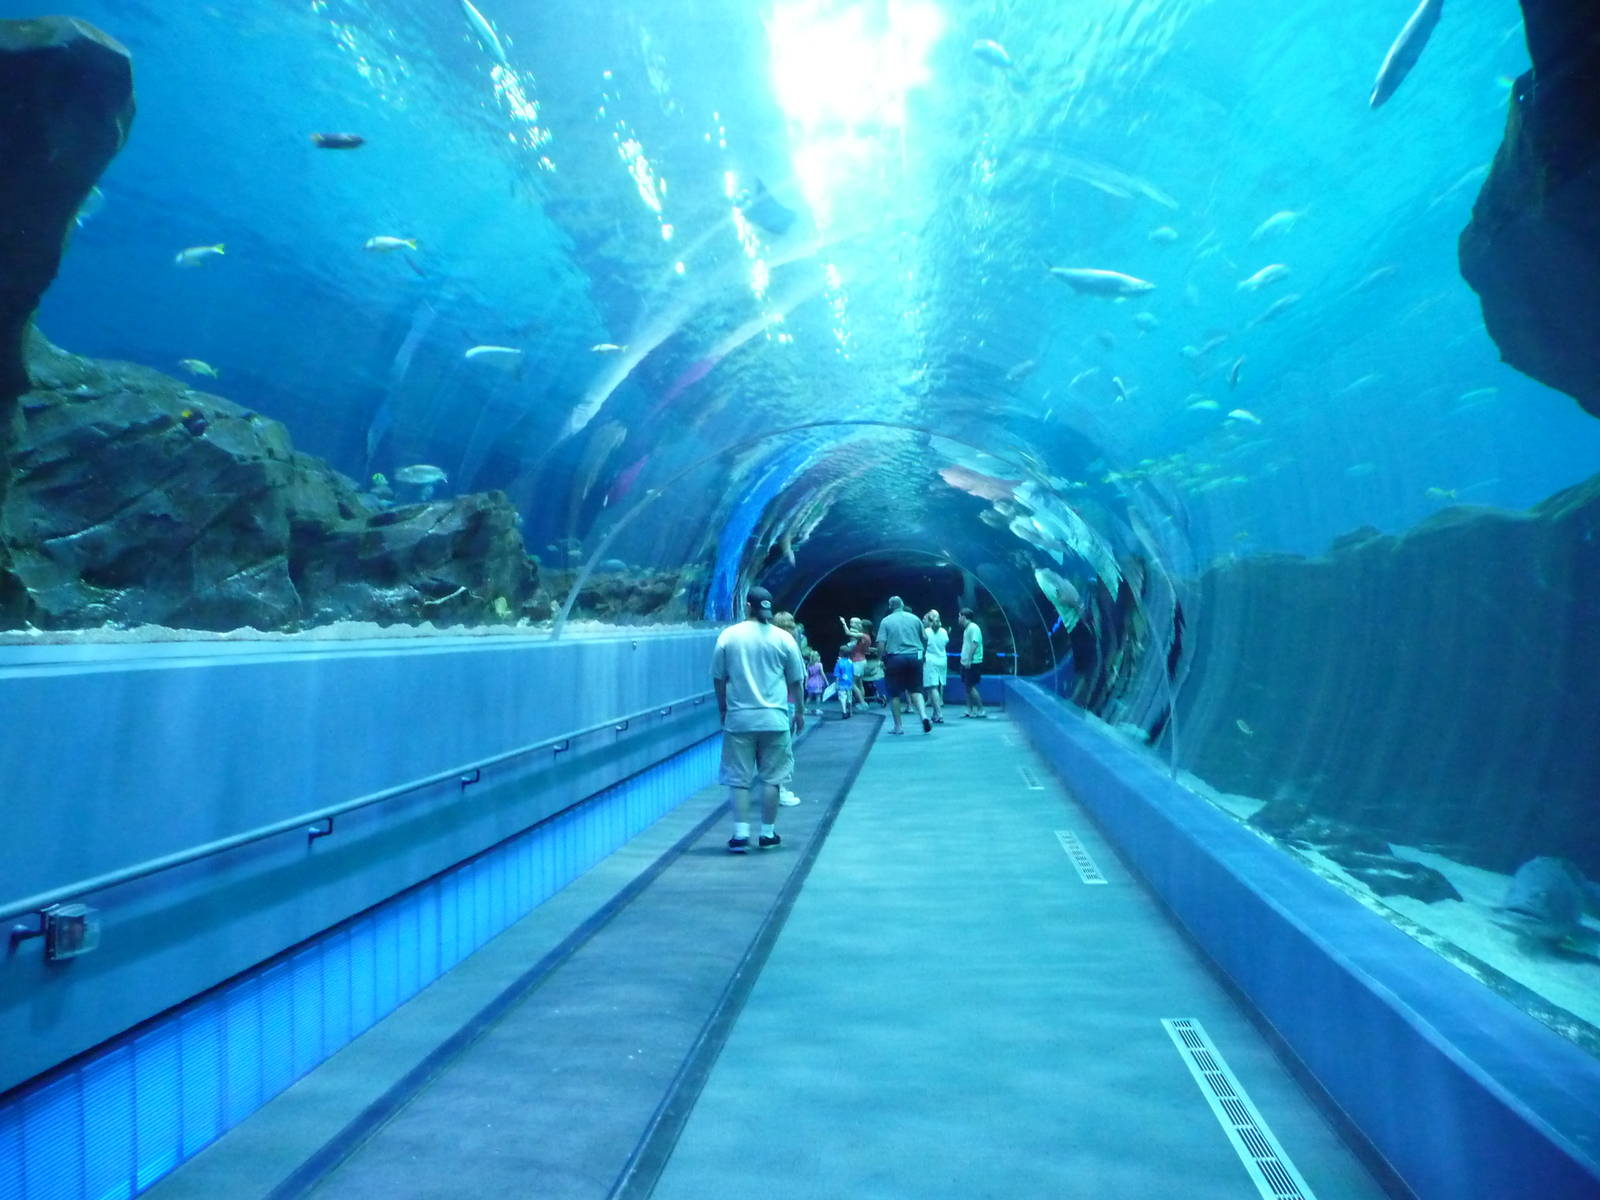 Georgia aquarium atlanta georgia usa underwater tunnel